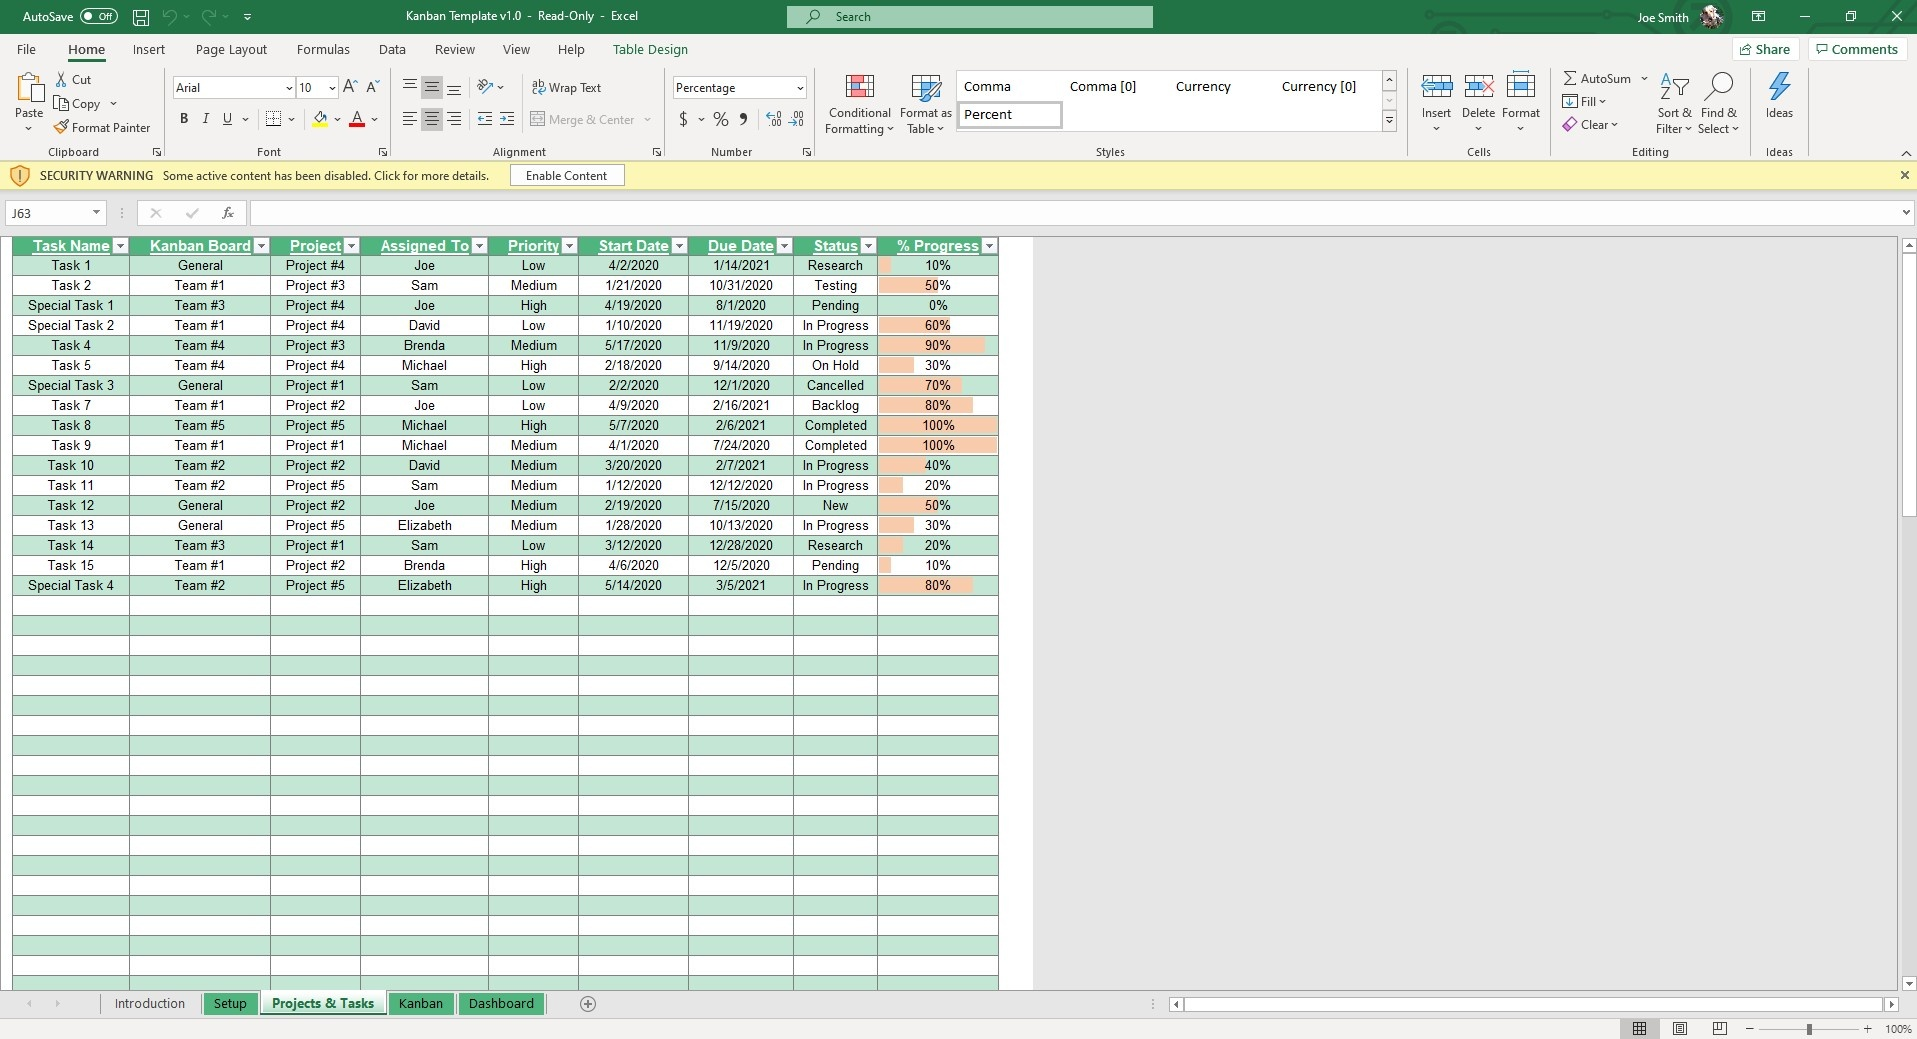 Log your tasks and projects into the table and they will auto populate in the other sheets.